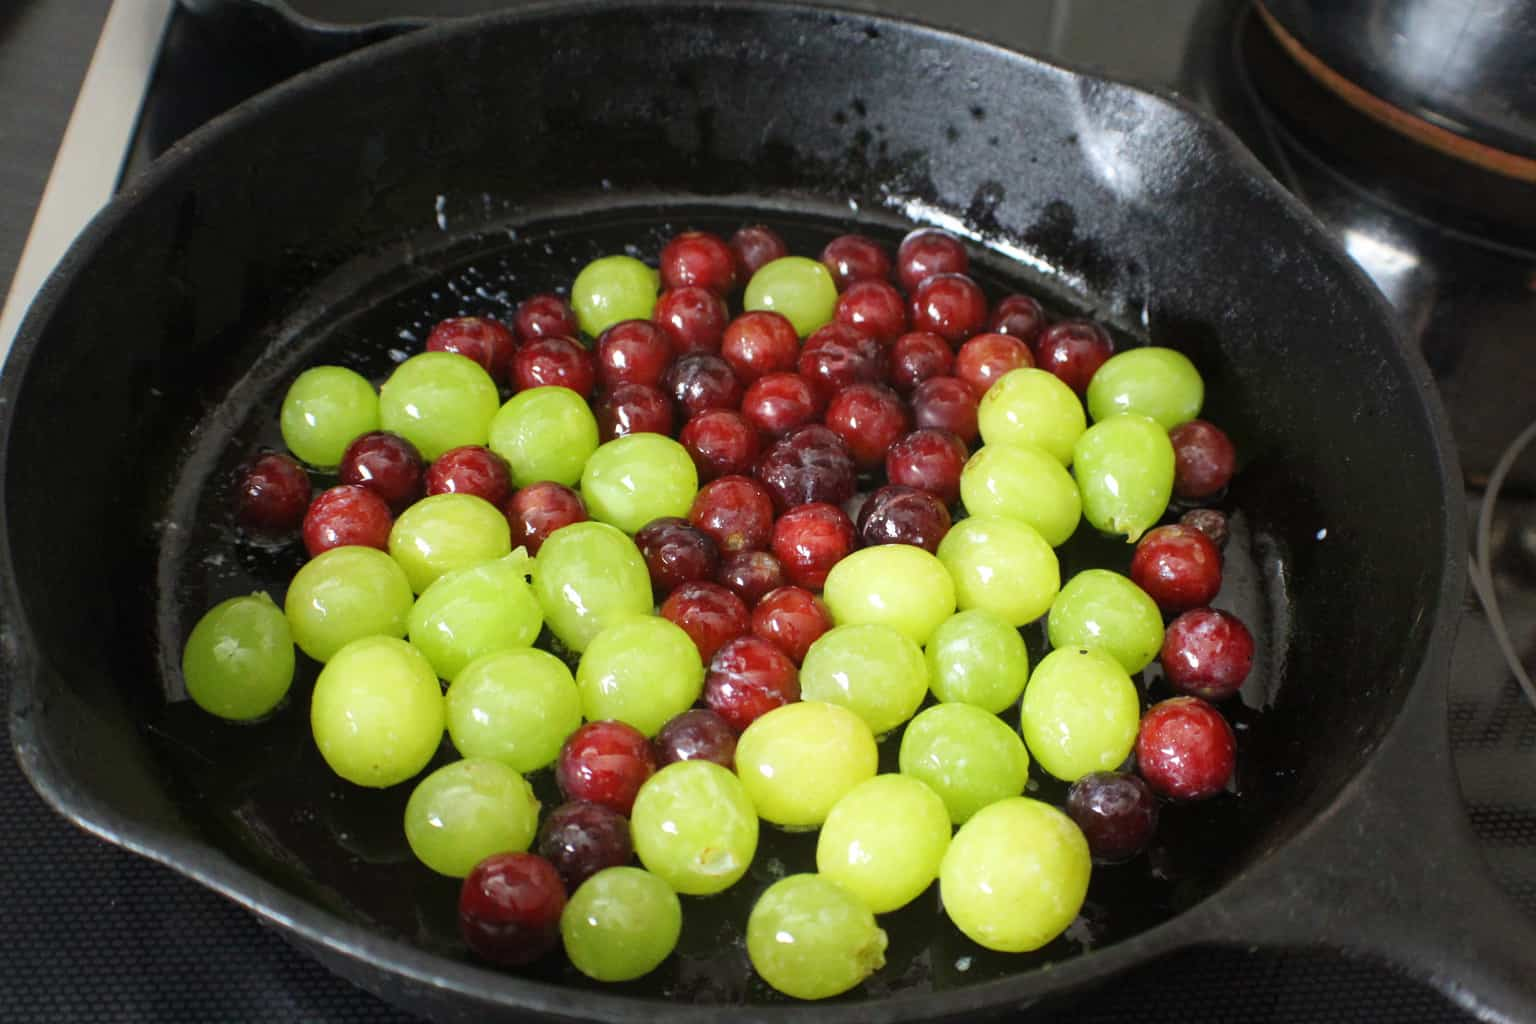 Red and green grapes in cast iron skillet